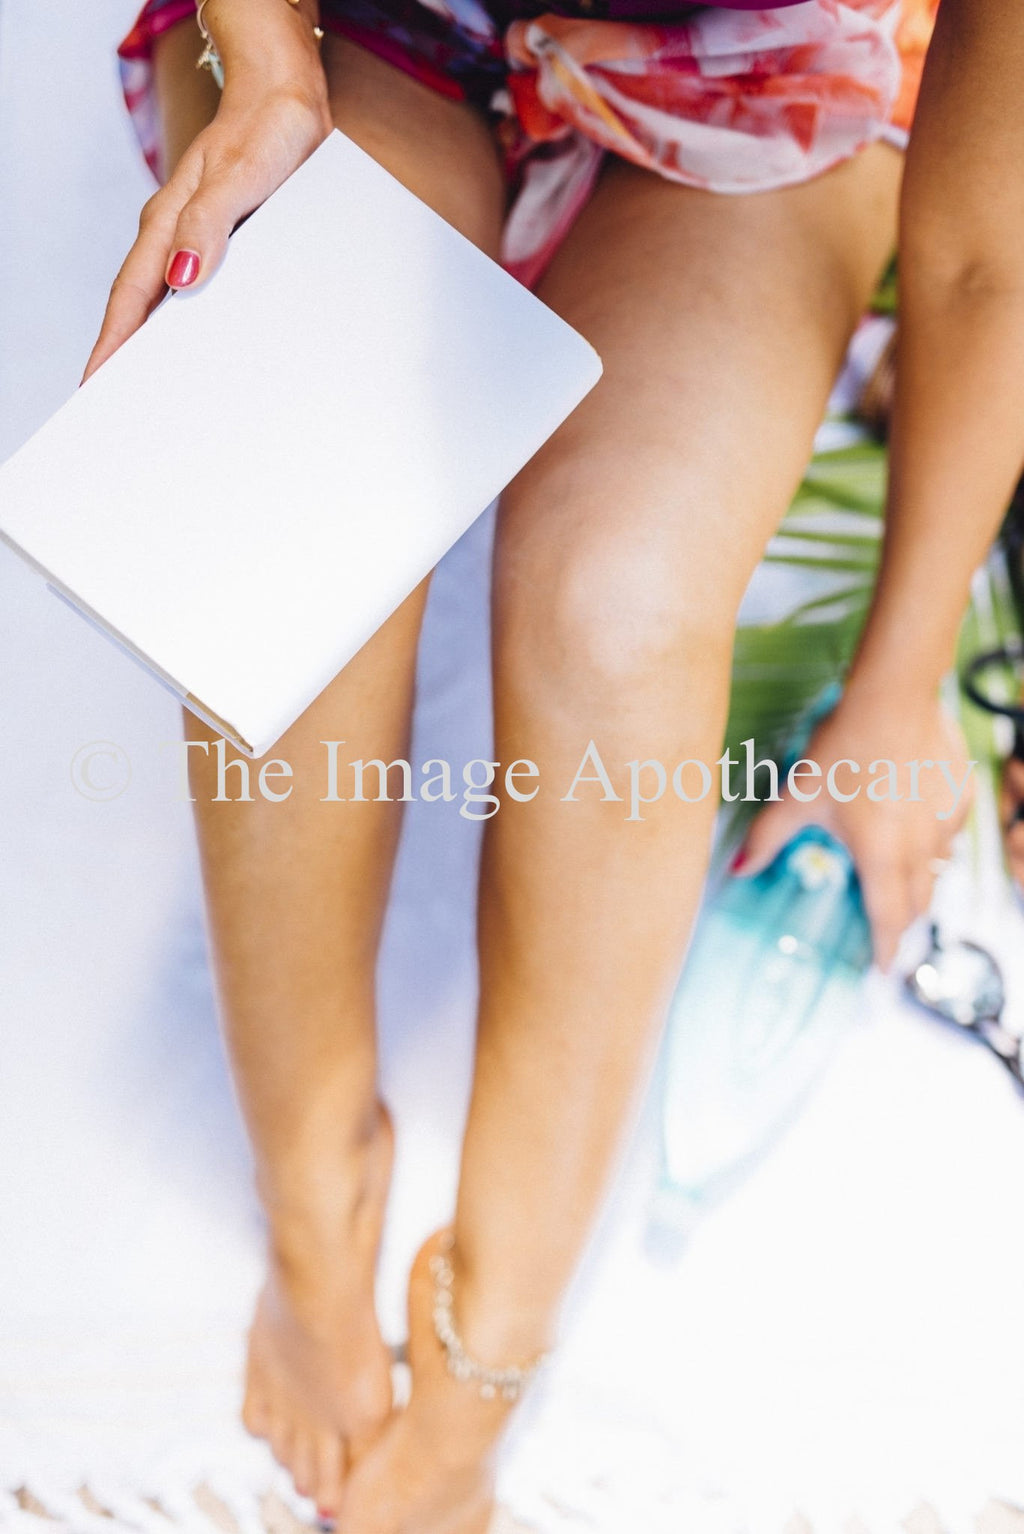 Paradise-6384 - Stock Photography by The Image Apothecary